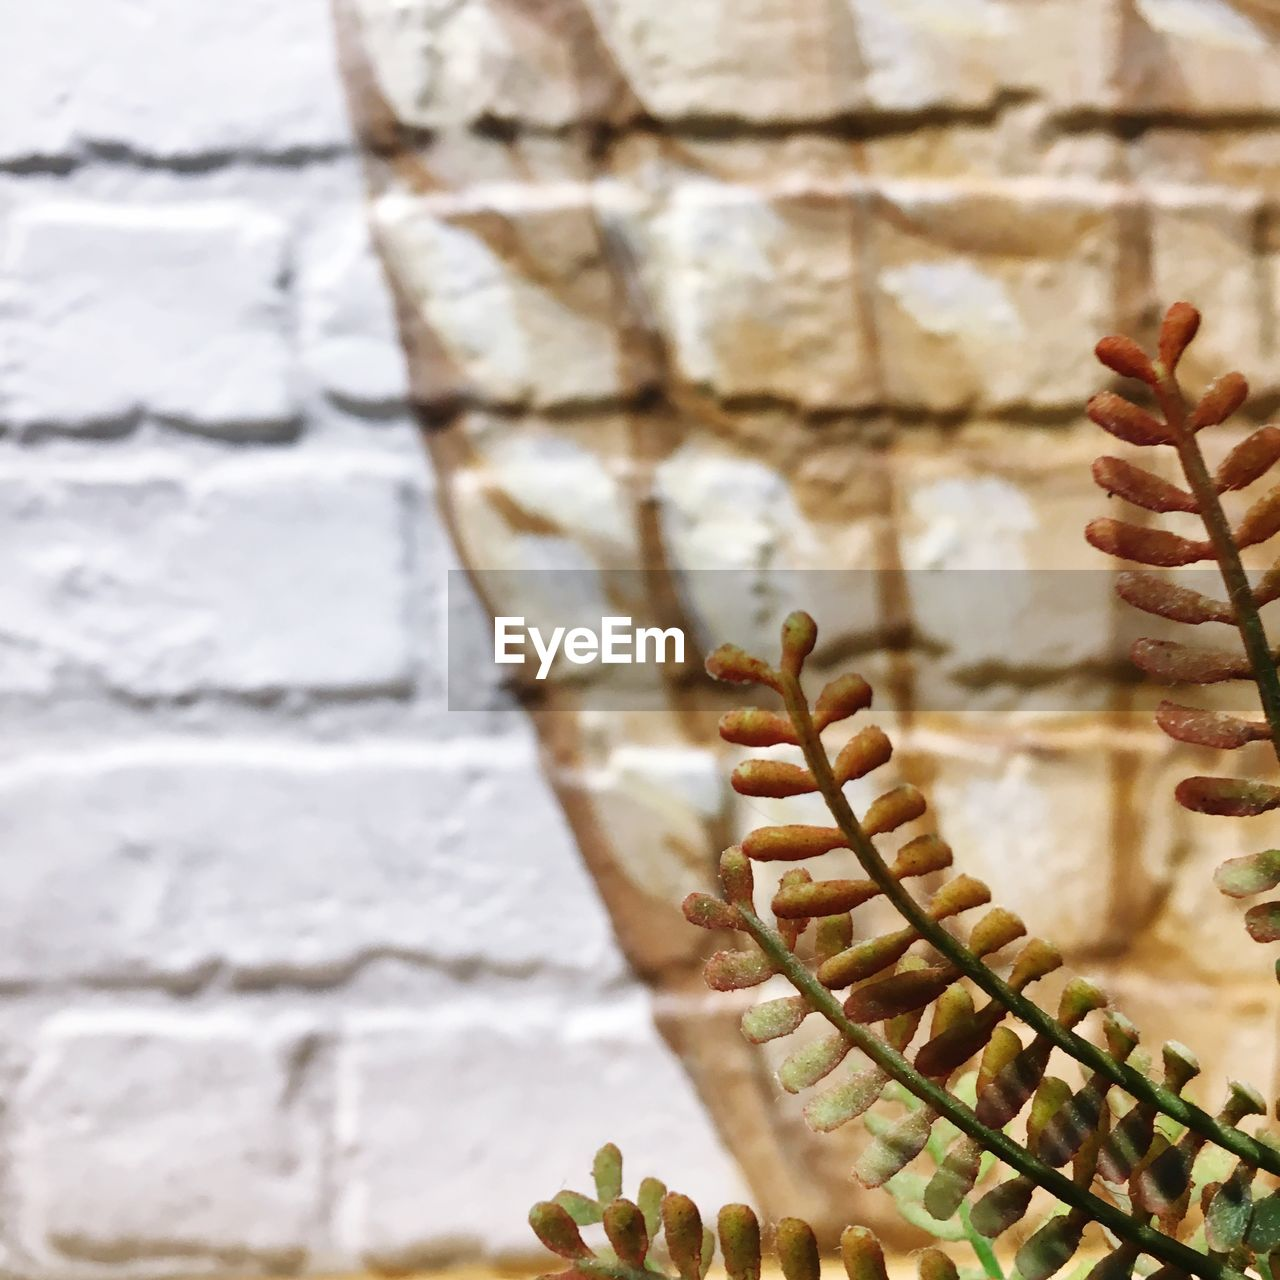 close-up, no people, day, wall - building feature, focus on foreground, nature, wall, built structure, pattern, outdoors, architecture, white color, one animal, solid, textured, animal themes, stone wall